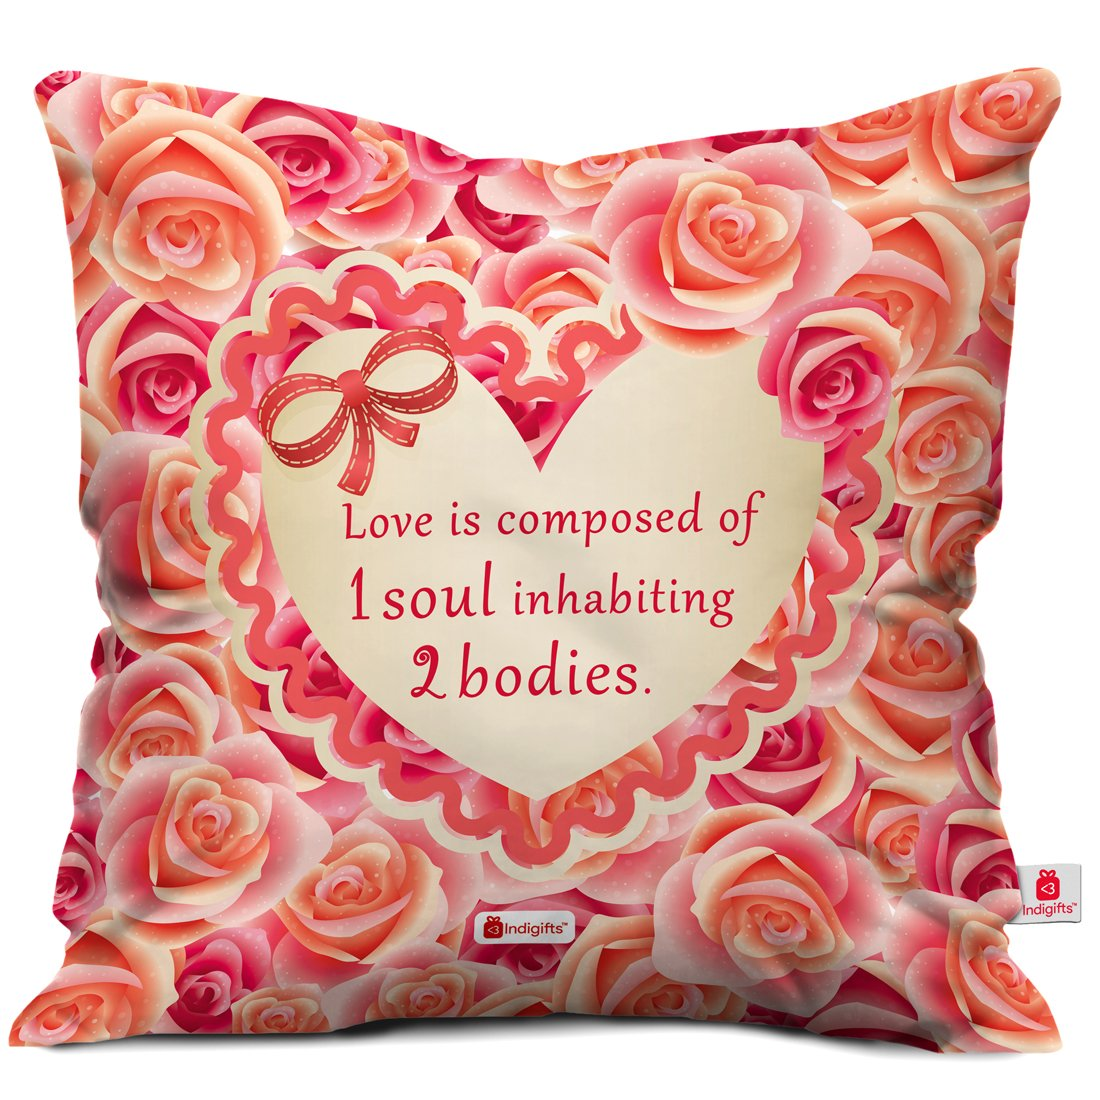 Love Decoration indibni Valentine Gifts Love is Composed of One Soul Quote Designed in Roses Pink 16x16 Cushion Throw Pillow Cover Home-D/écor Halloween Valentine Xmas